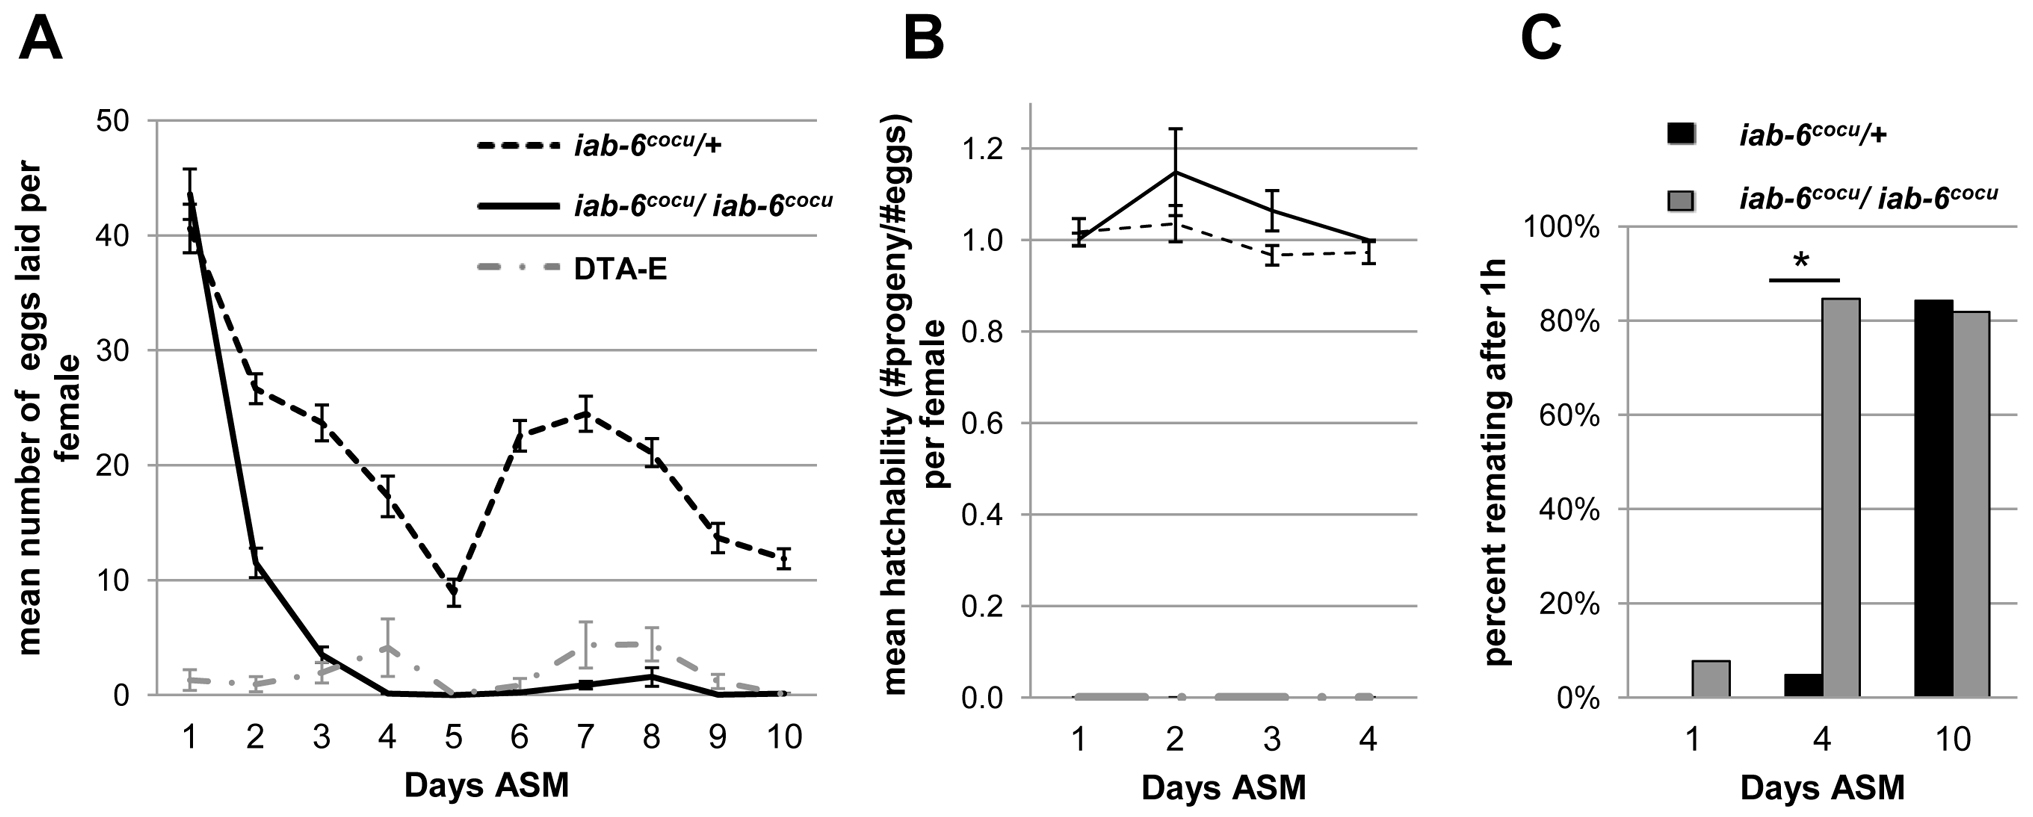 Egg-laying and receptivity in mates of <i>iab-6<sup>cocu</sup></i> or control males.